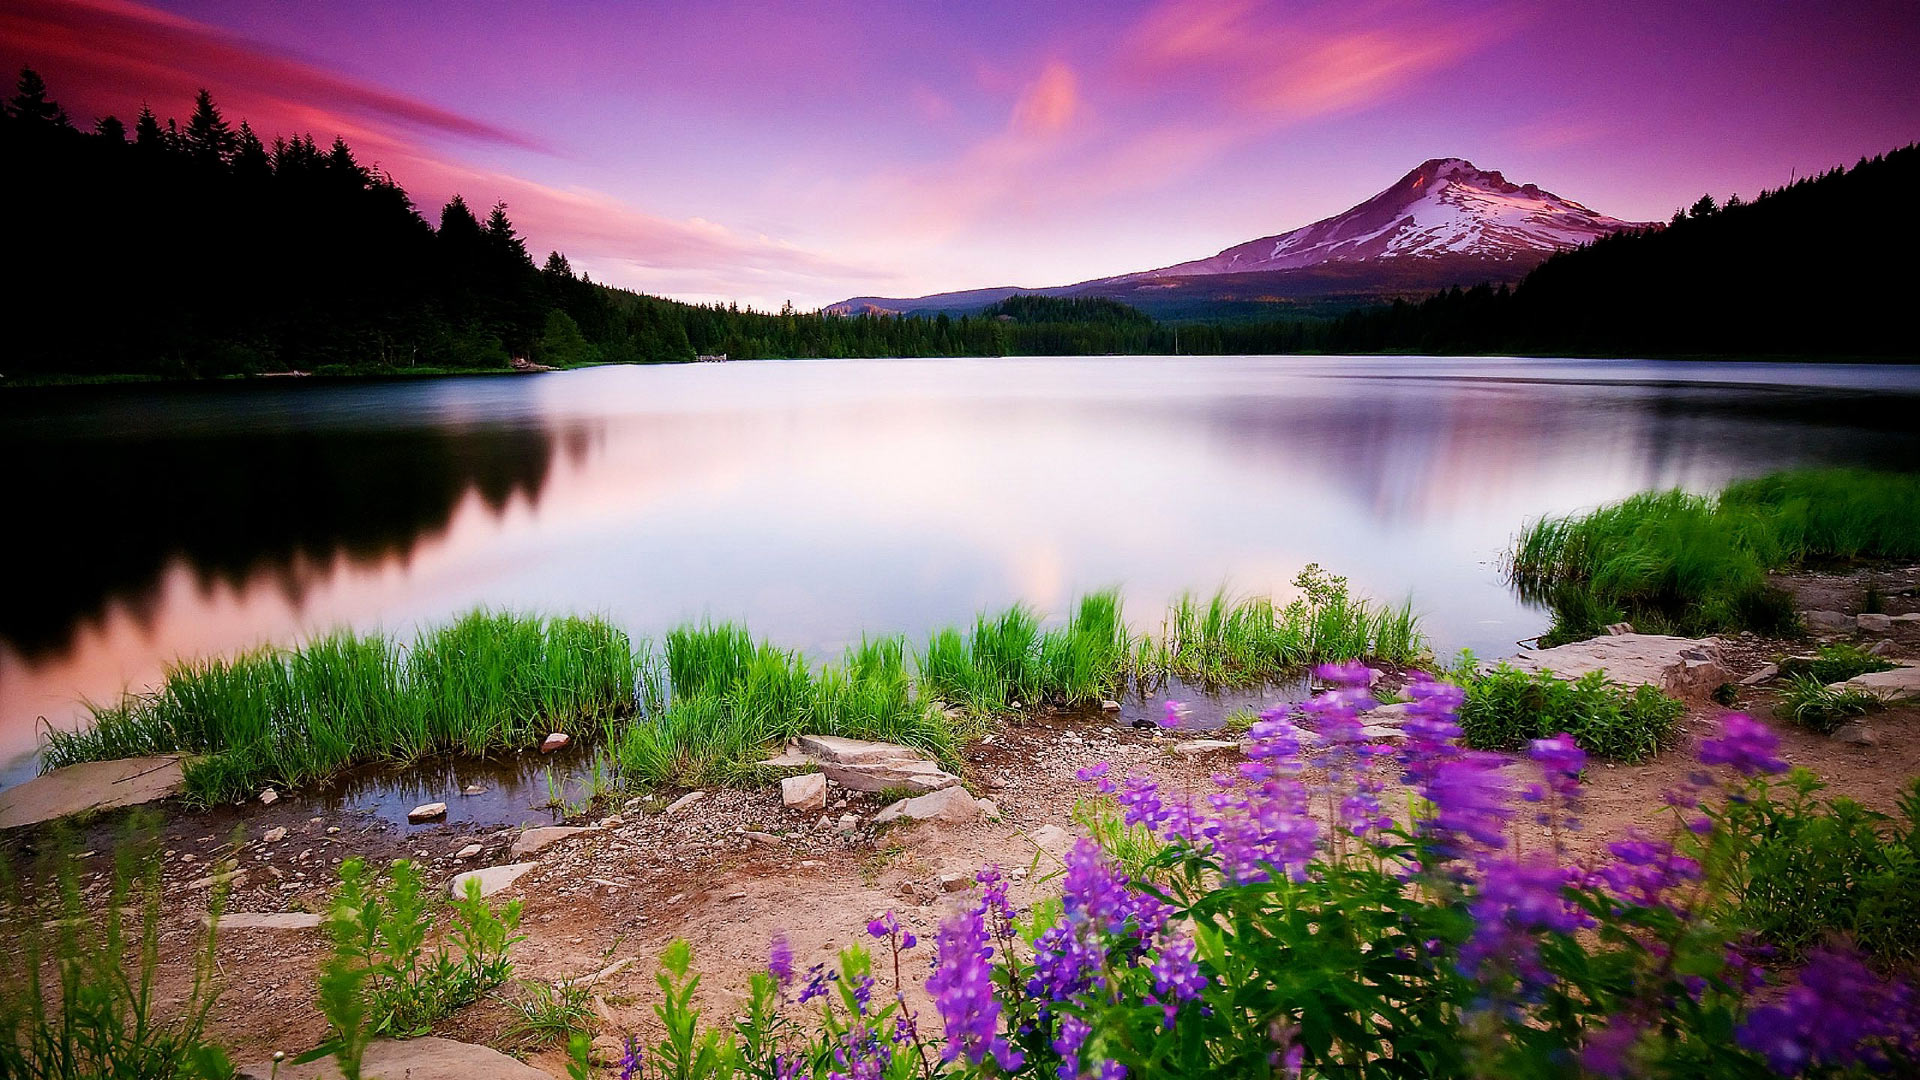 Beautiful Natural Scenery Images Pixabay Download Free Pictures Amazing nature pictures download